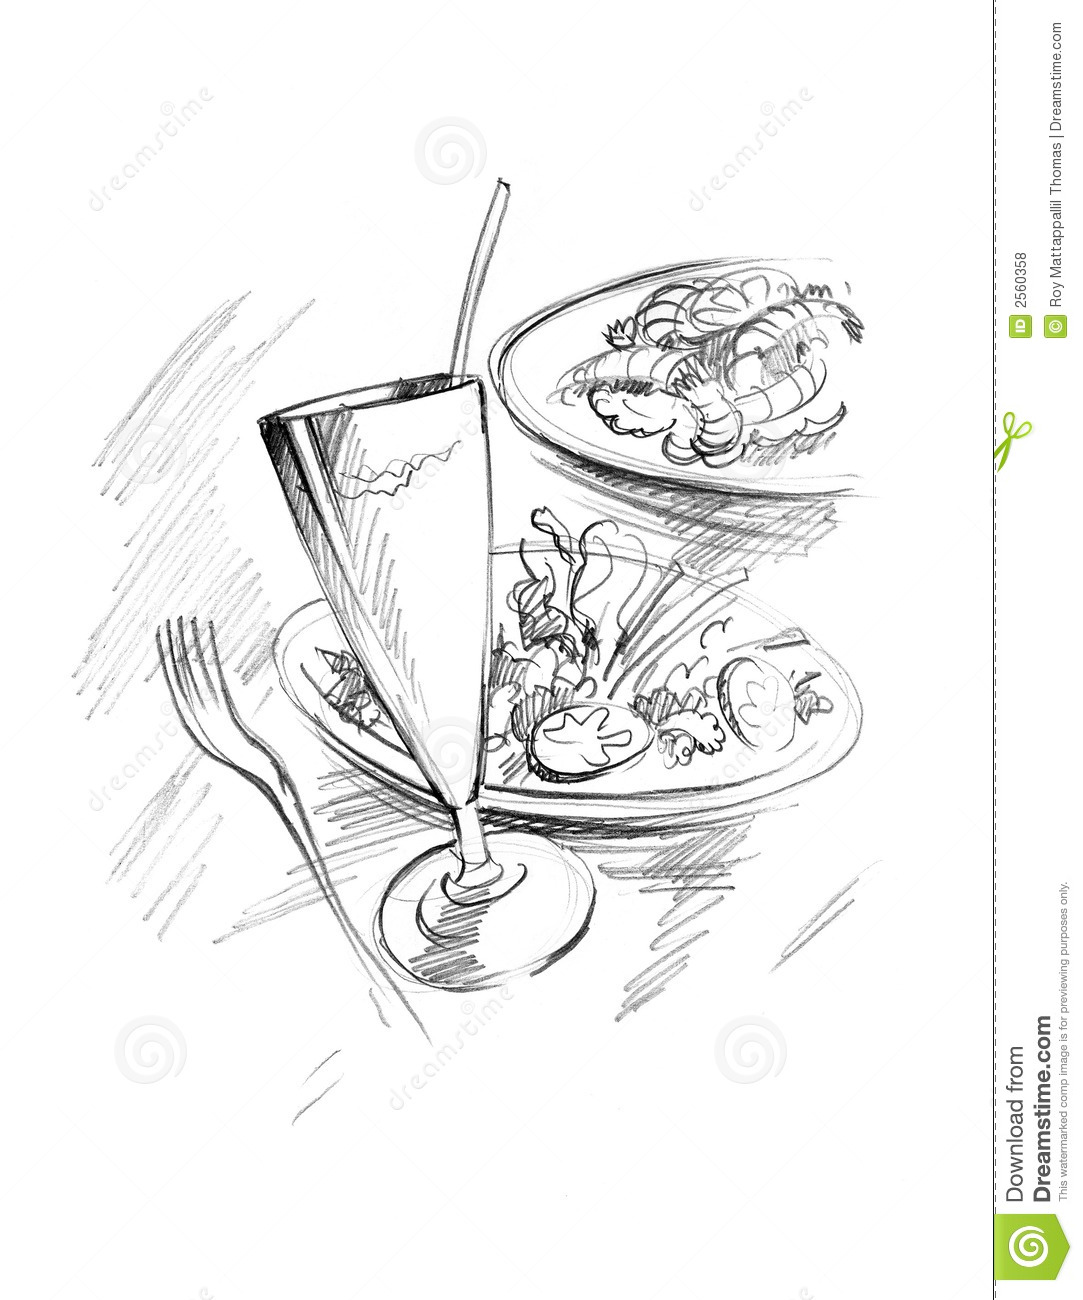 Food Sketch Royalty Free Stock Photos - Image: 2560358